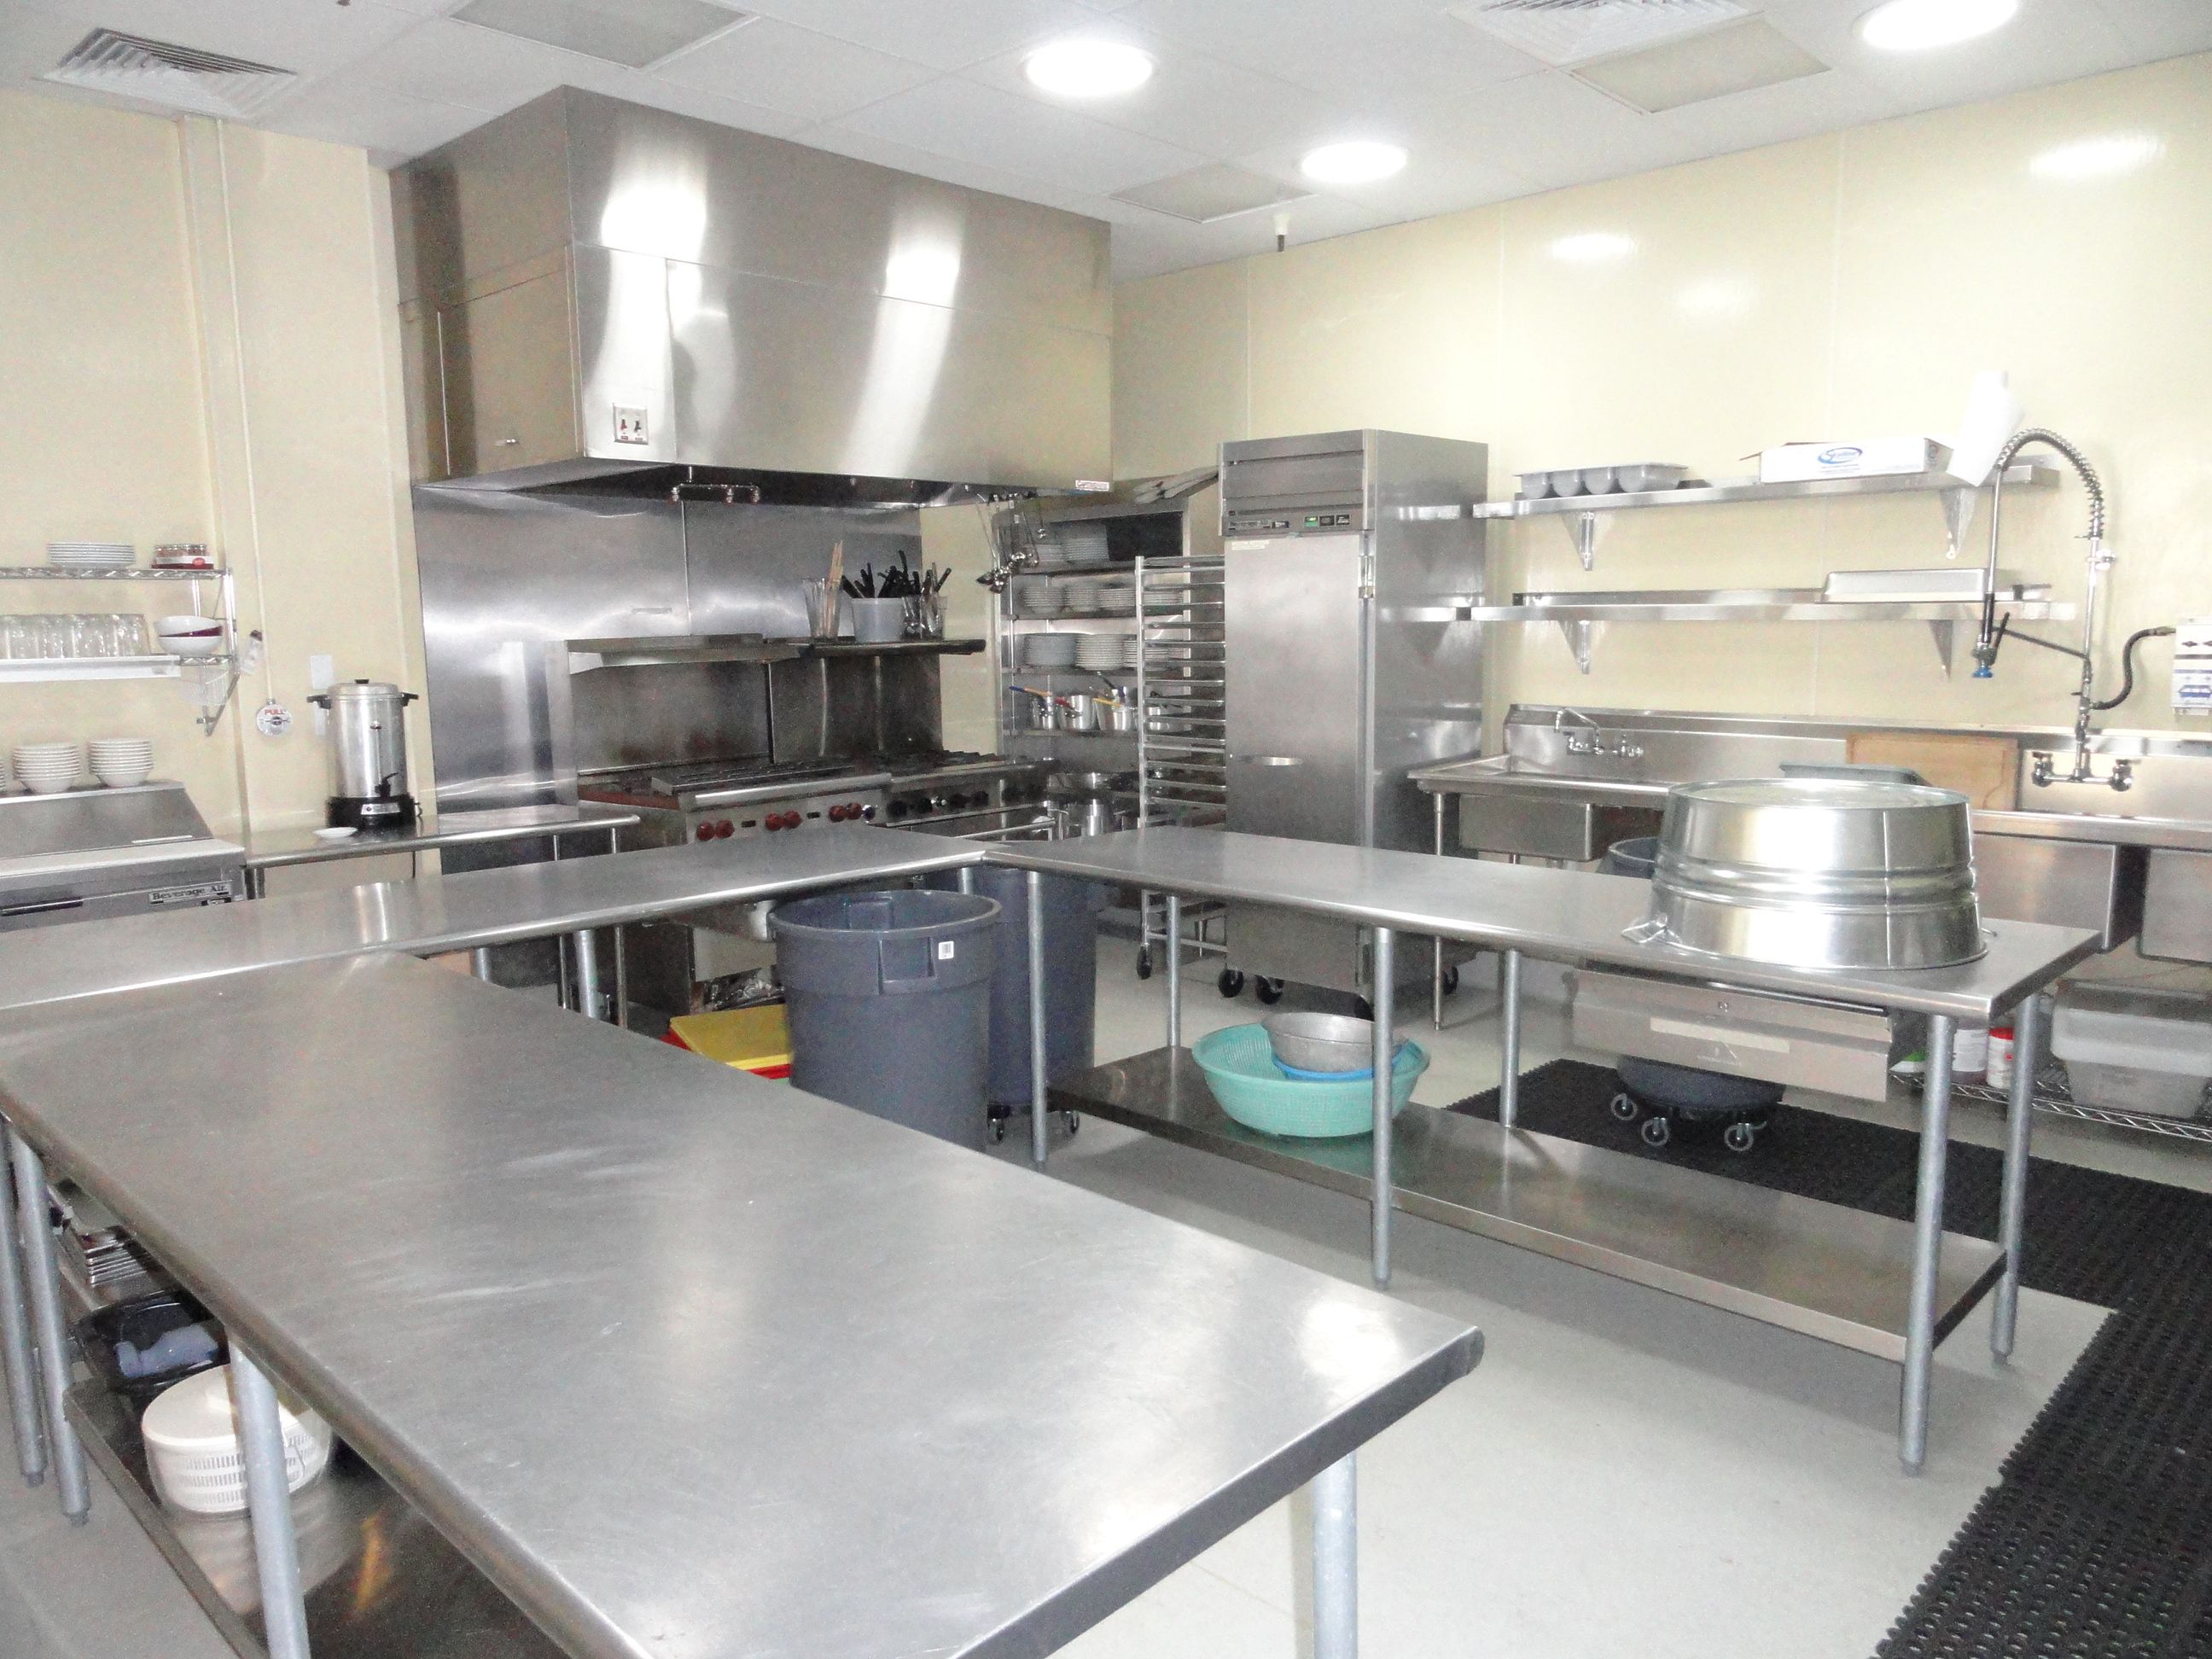 commercial kitchen design ideas 12 excellent small kitchen equipment digital 5602